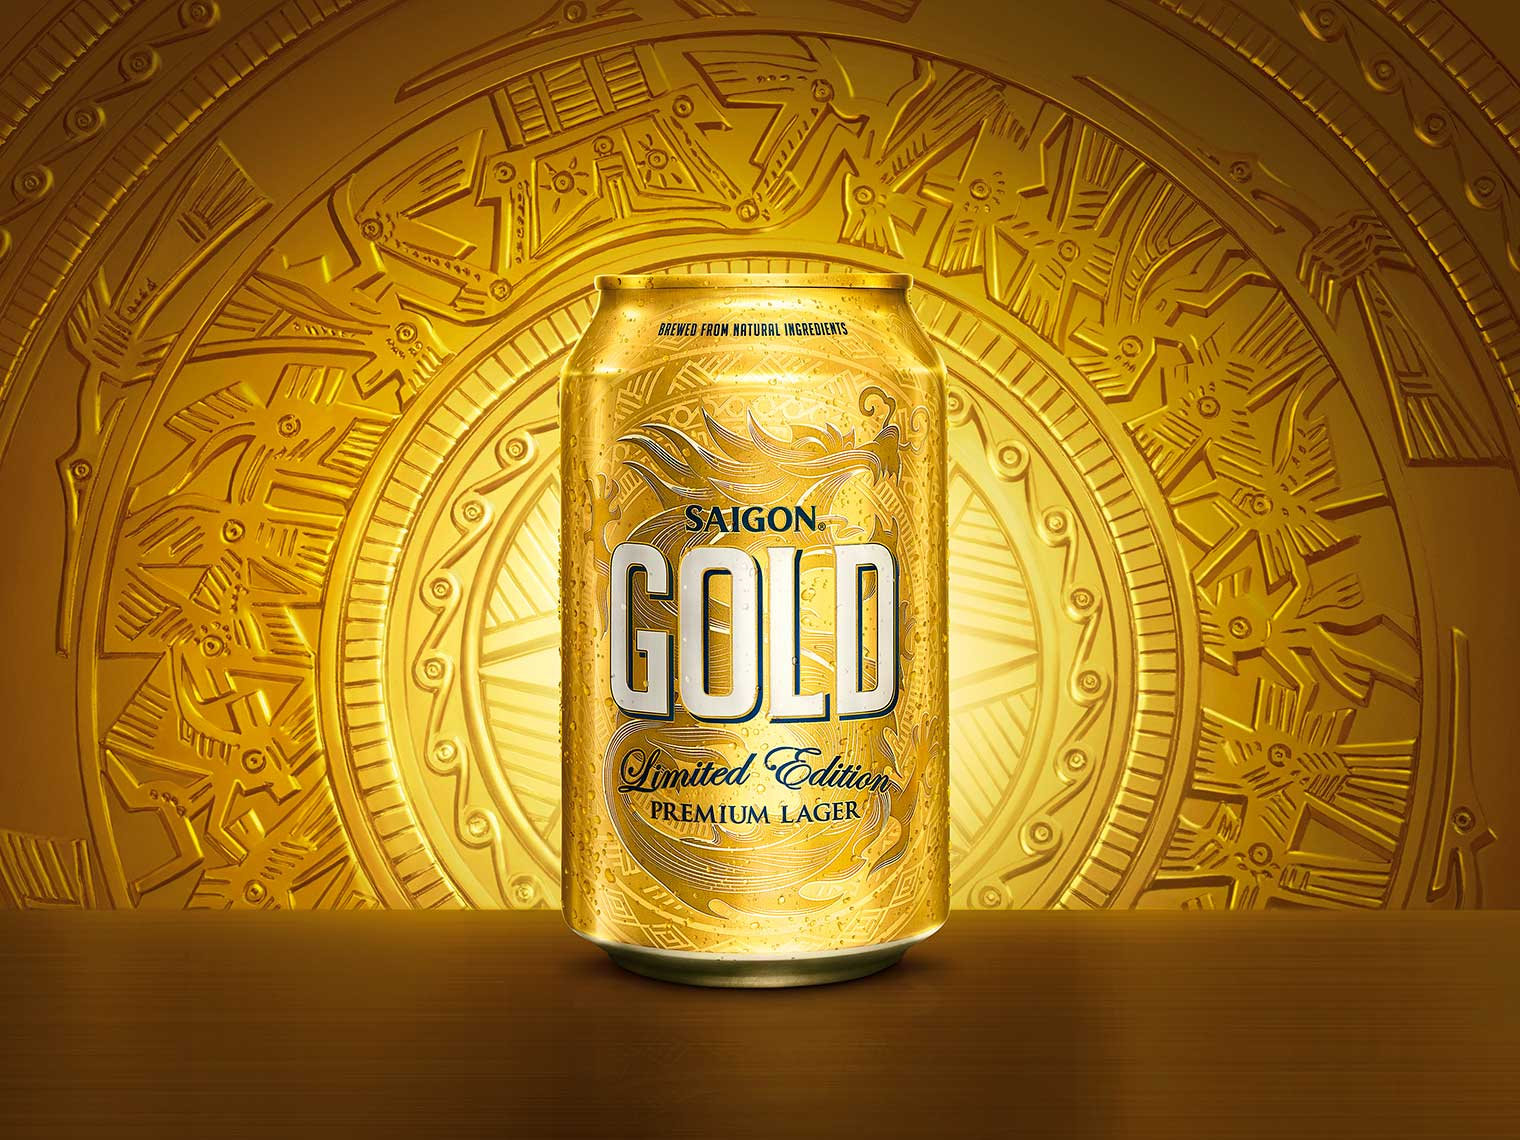 P096_Productshot_Saigon_Gold_beer_BiteStudio_WingChan